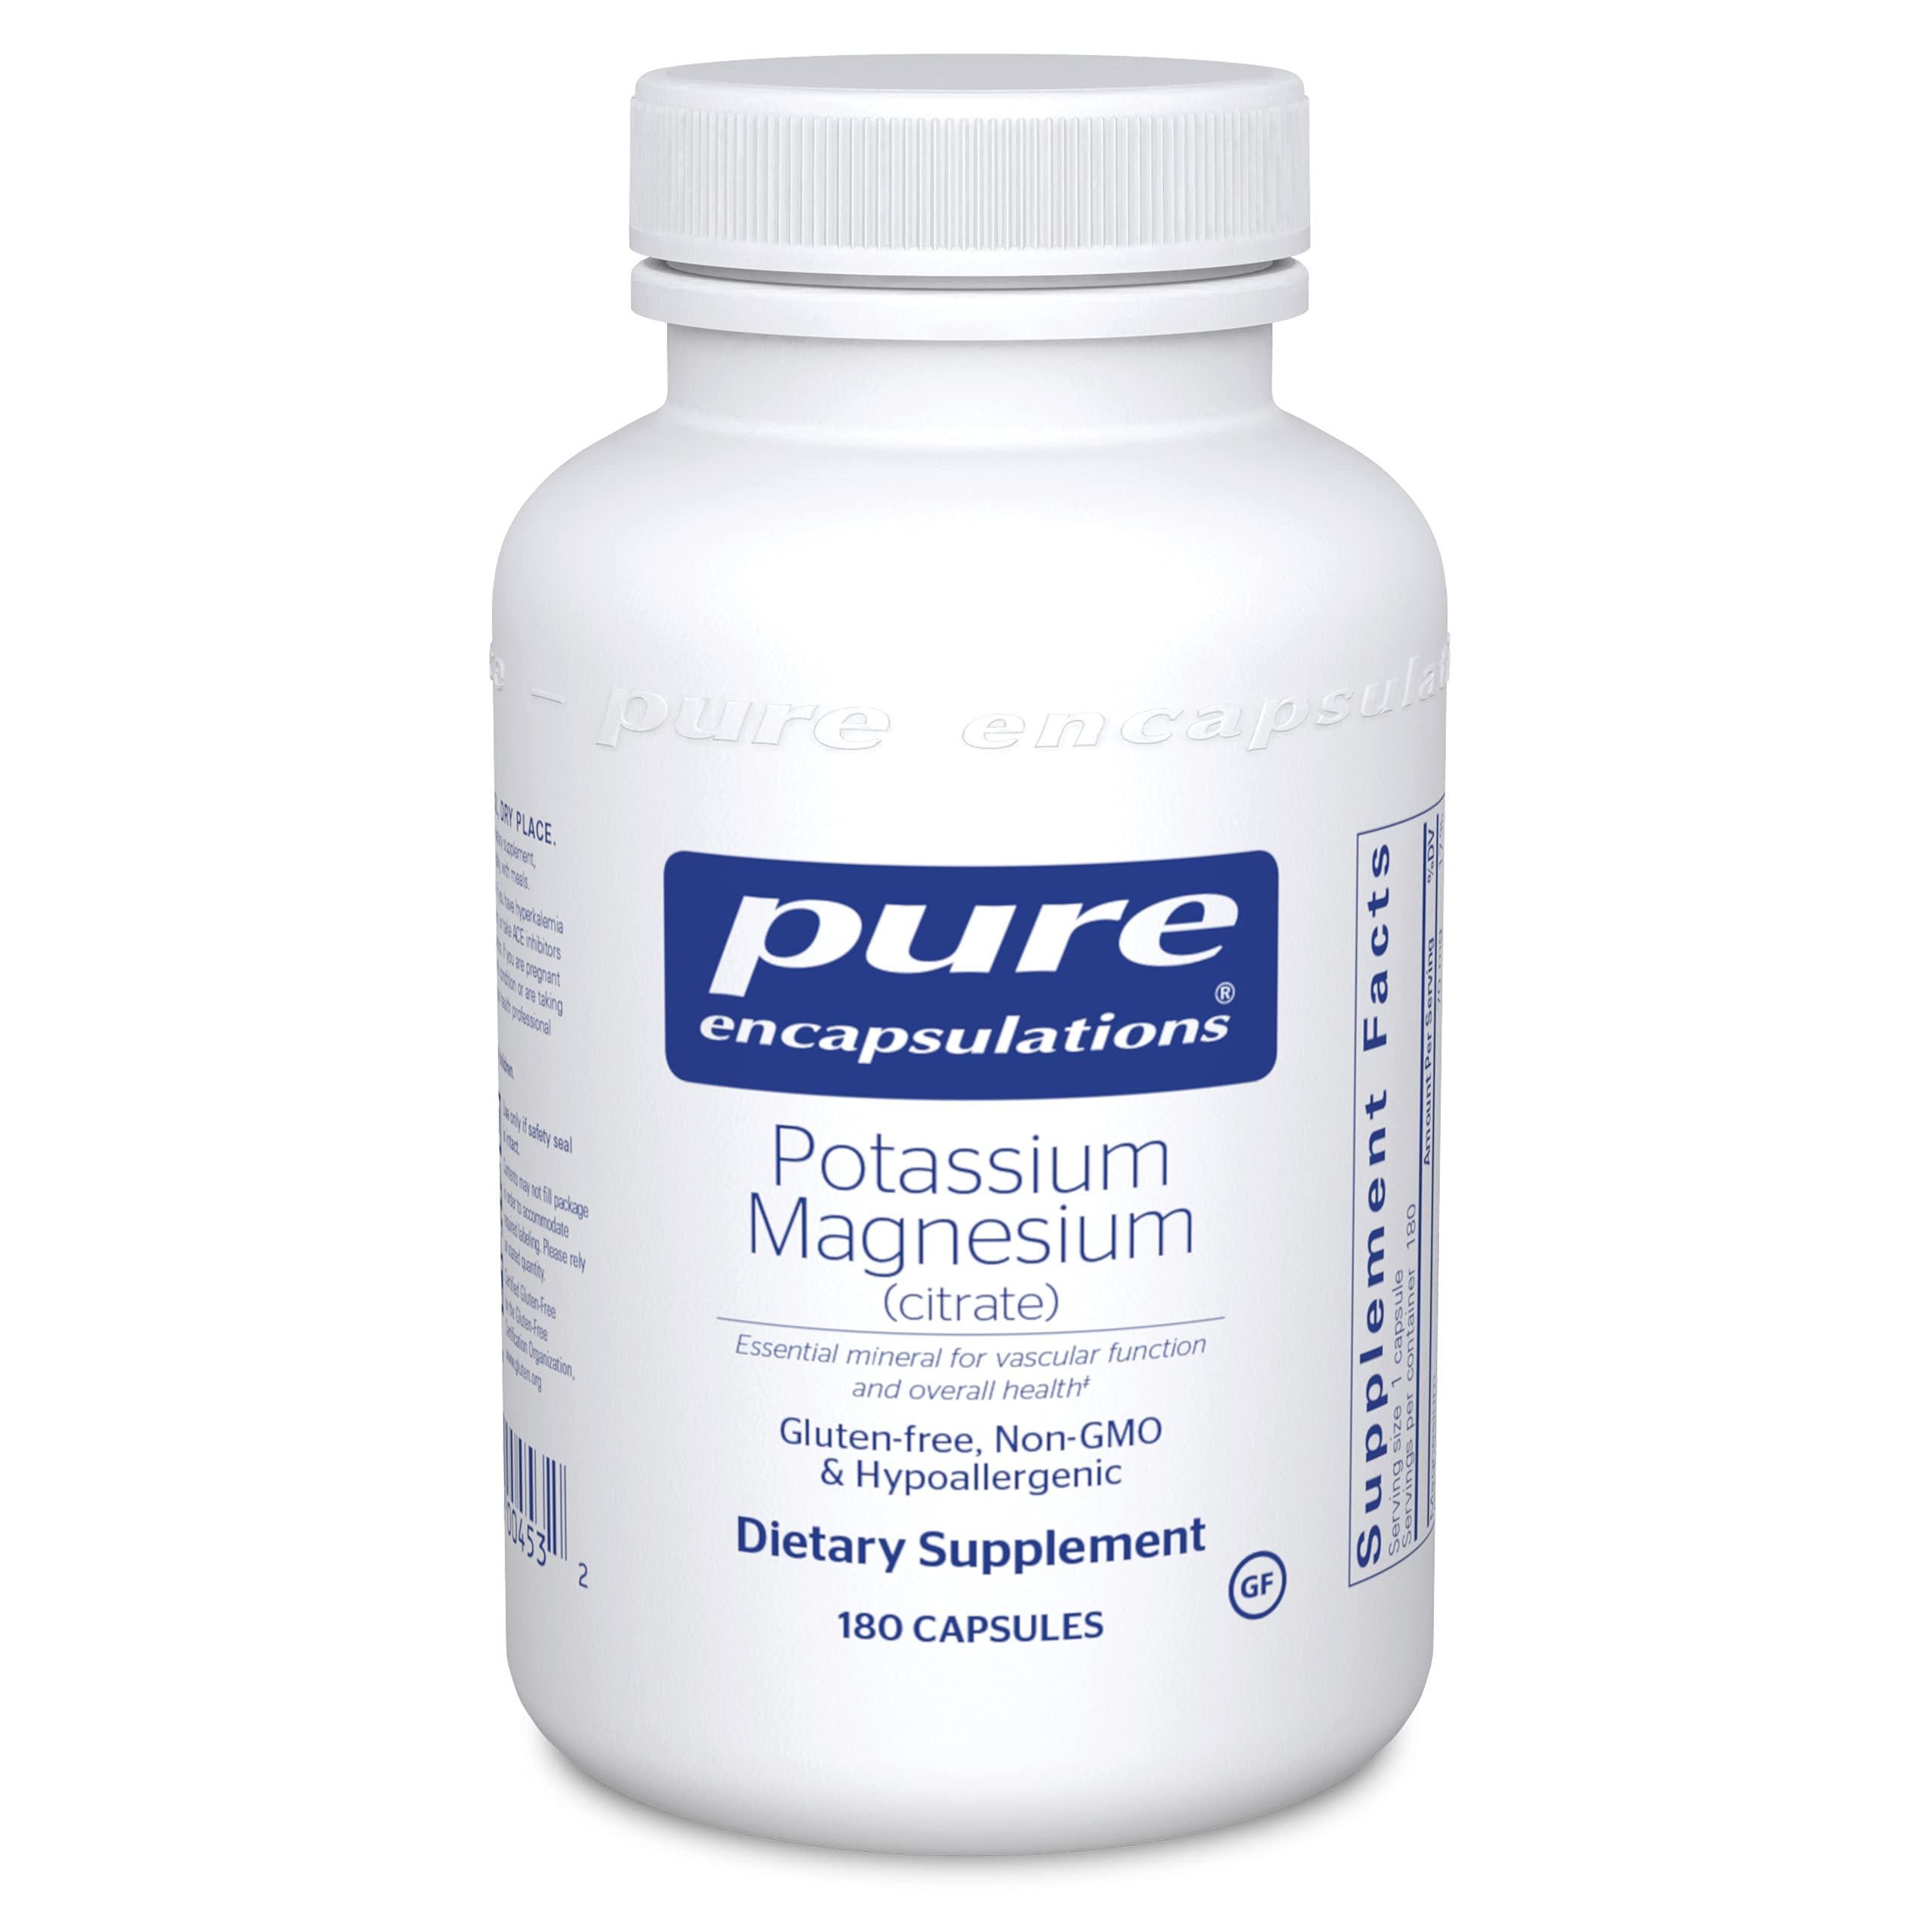 Pure Encapsulations Potassium Magnesium (Citrate)   Supports Heart Health, Muscles, Bone Mineralization, Nerves, and Acid/Alkaline Balance*   180 Capsules